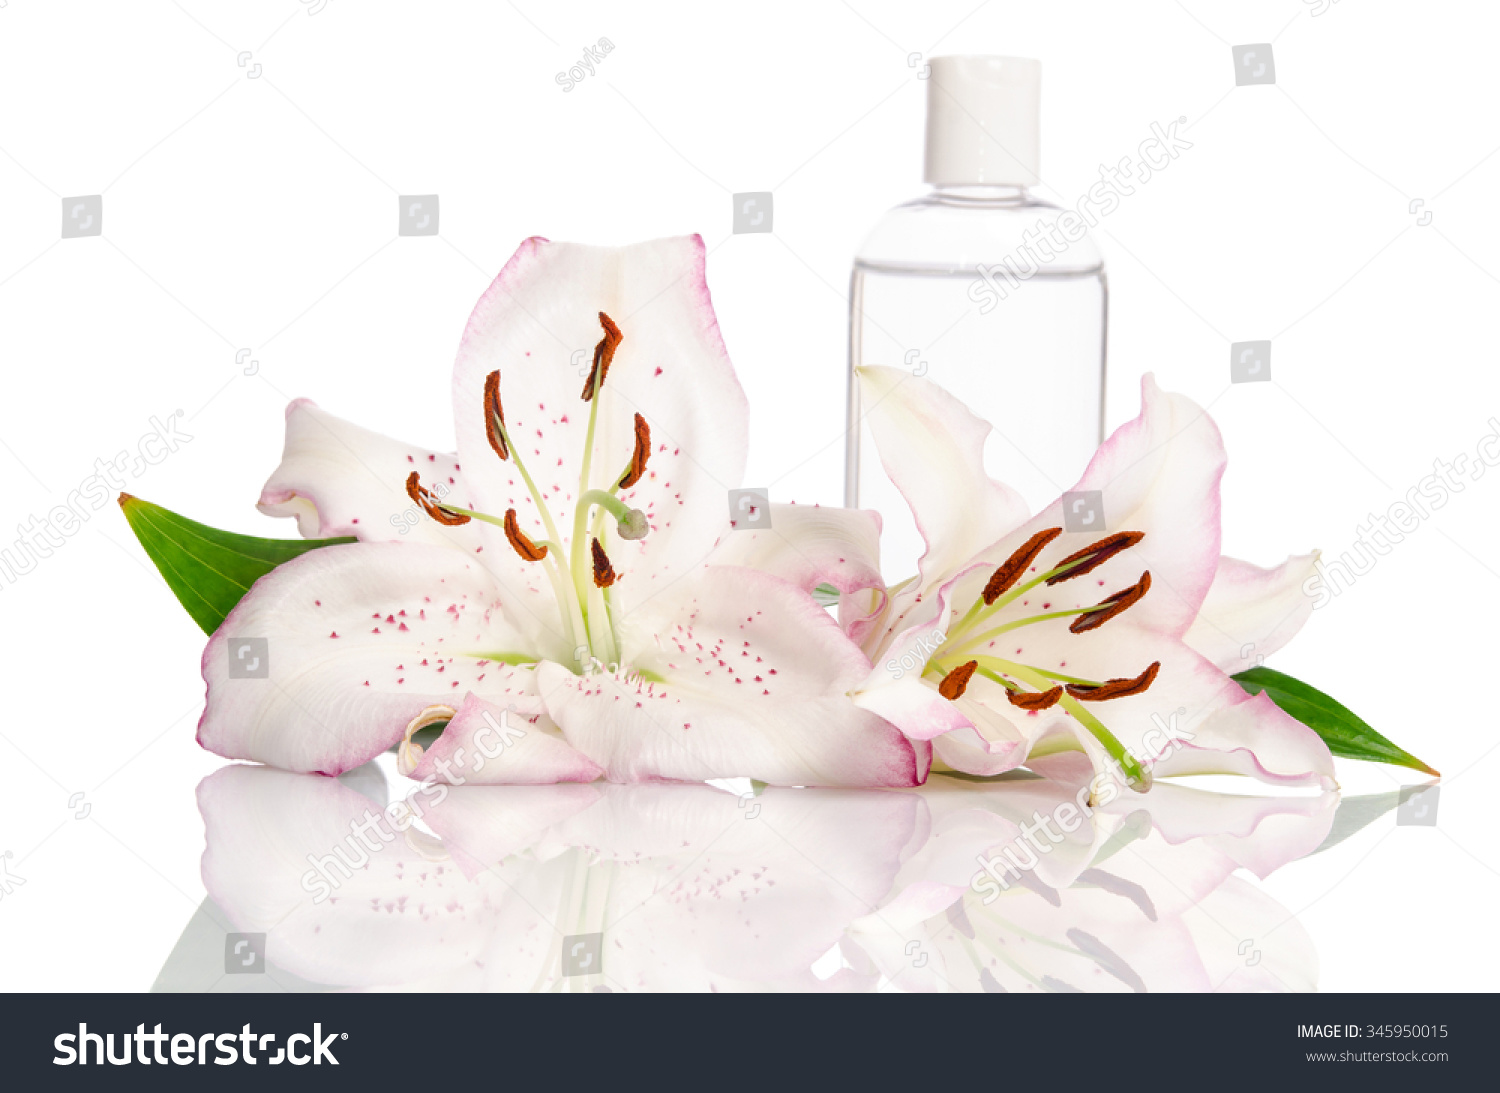 Tonic for skin care with lily flower on a white background ez canvas izmirmasajfo